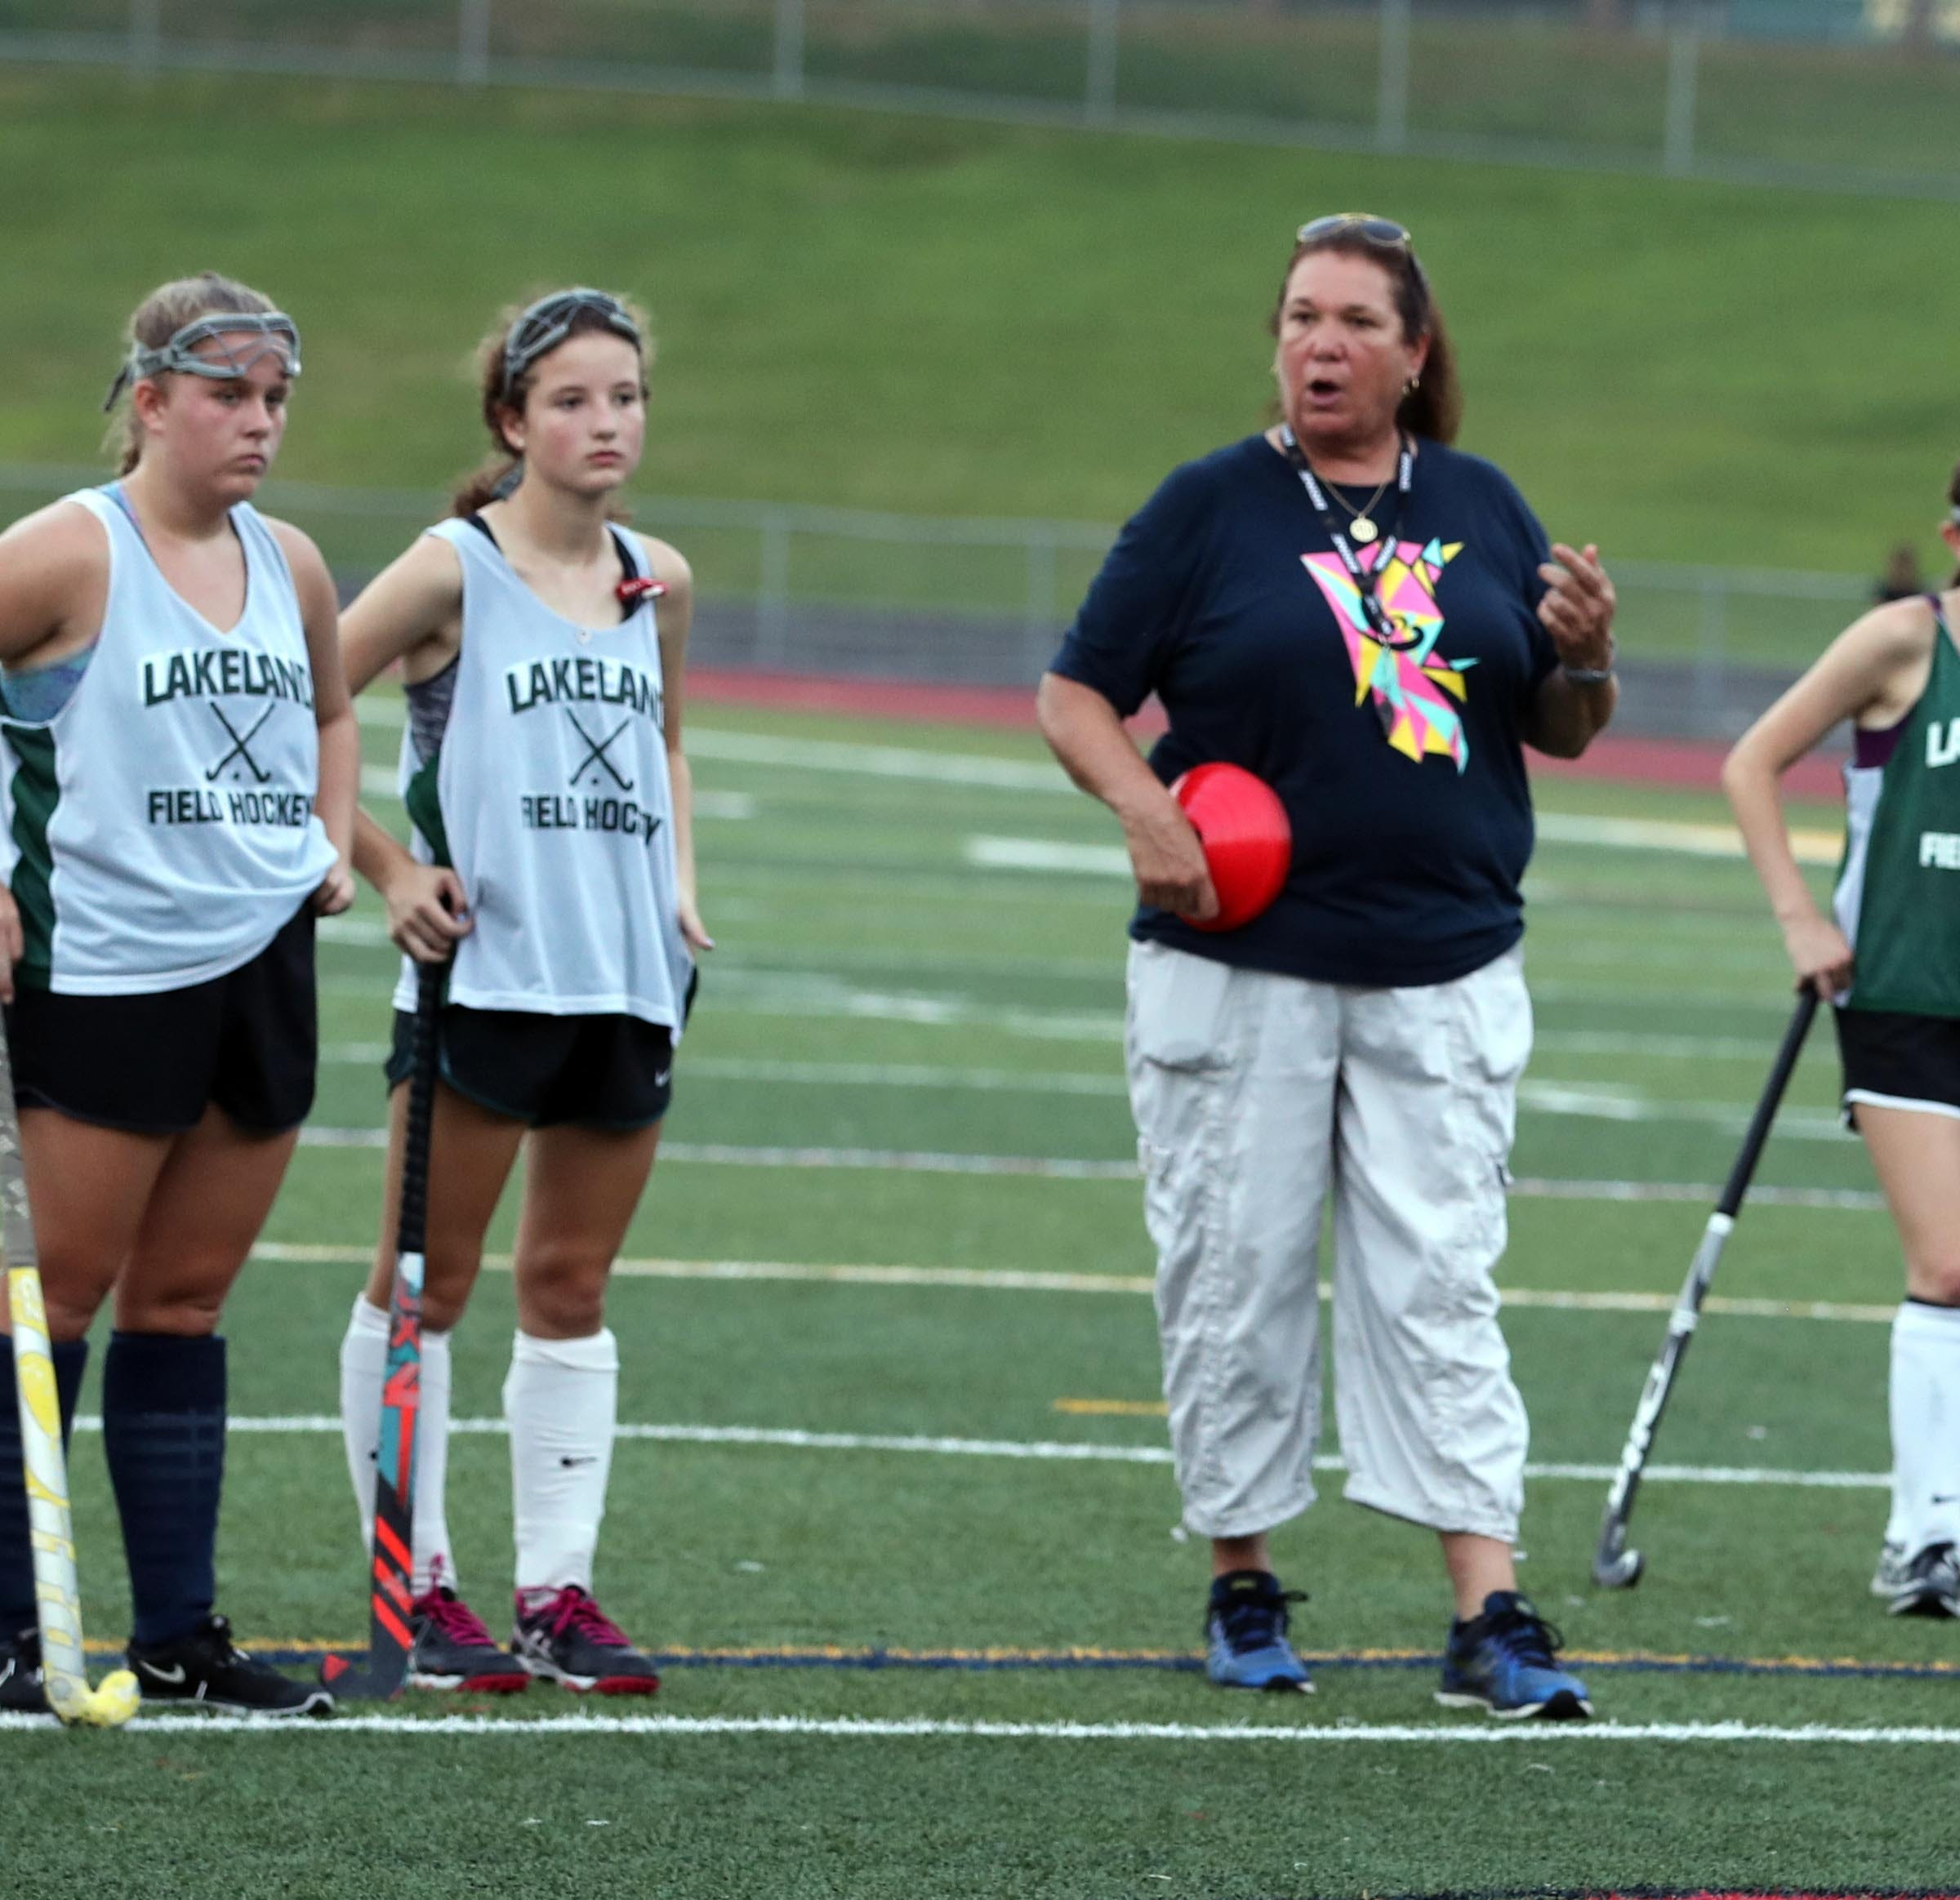 Field hockey: New motto, new year for nine-time defending state champs Lakeland